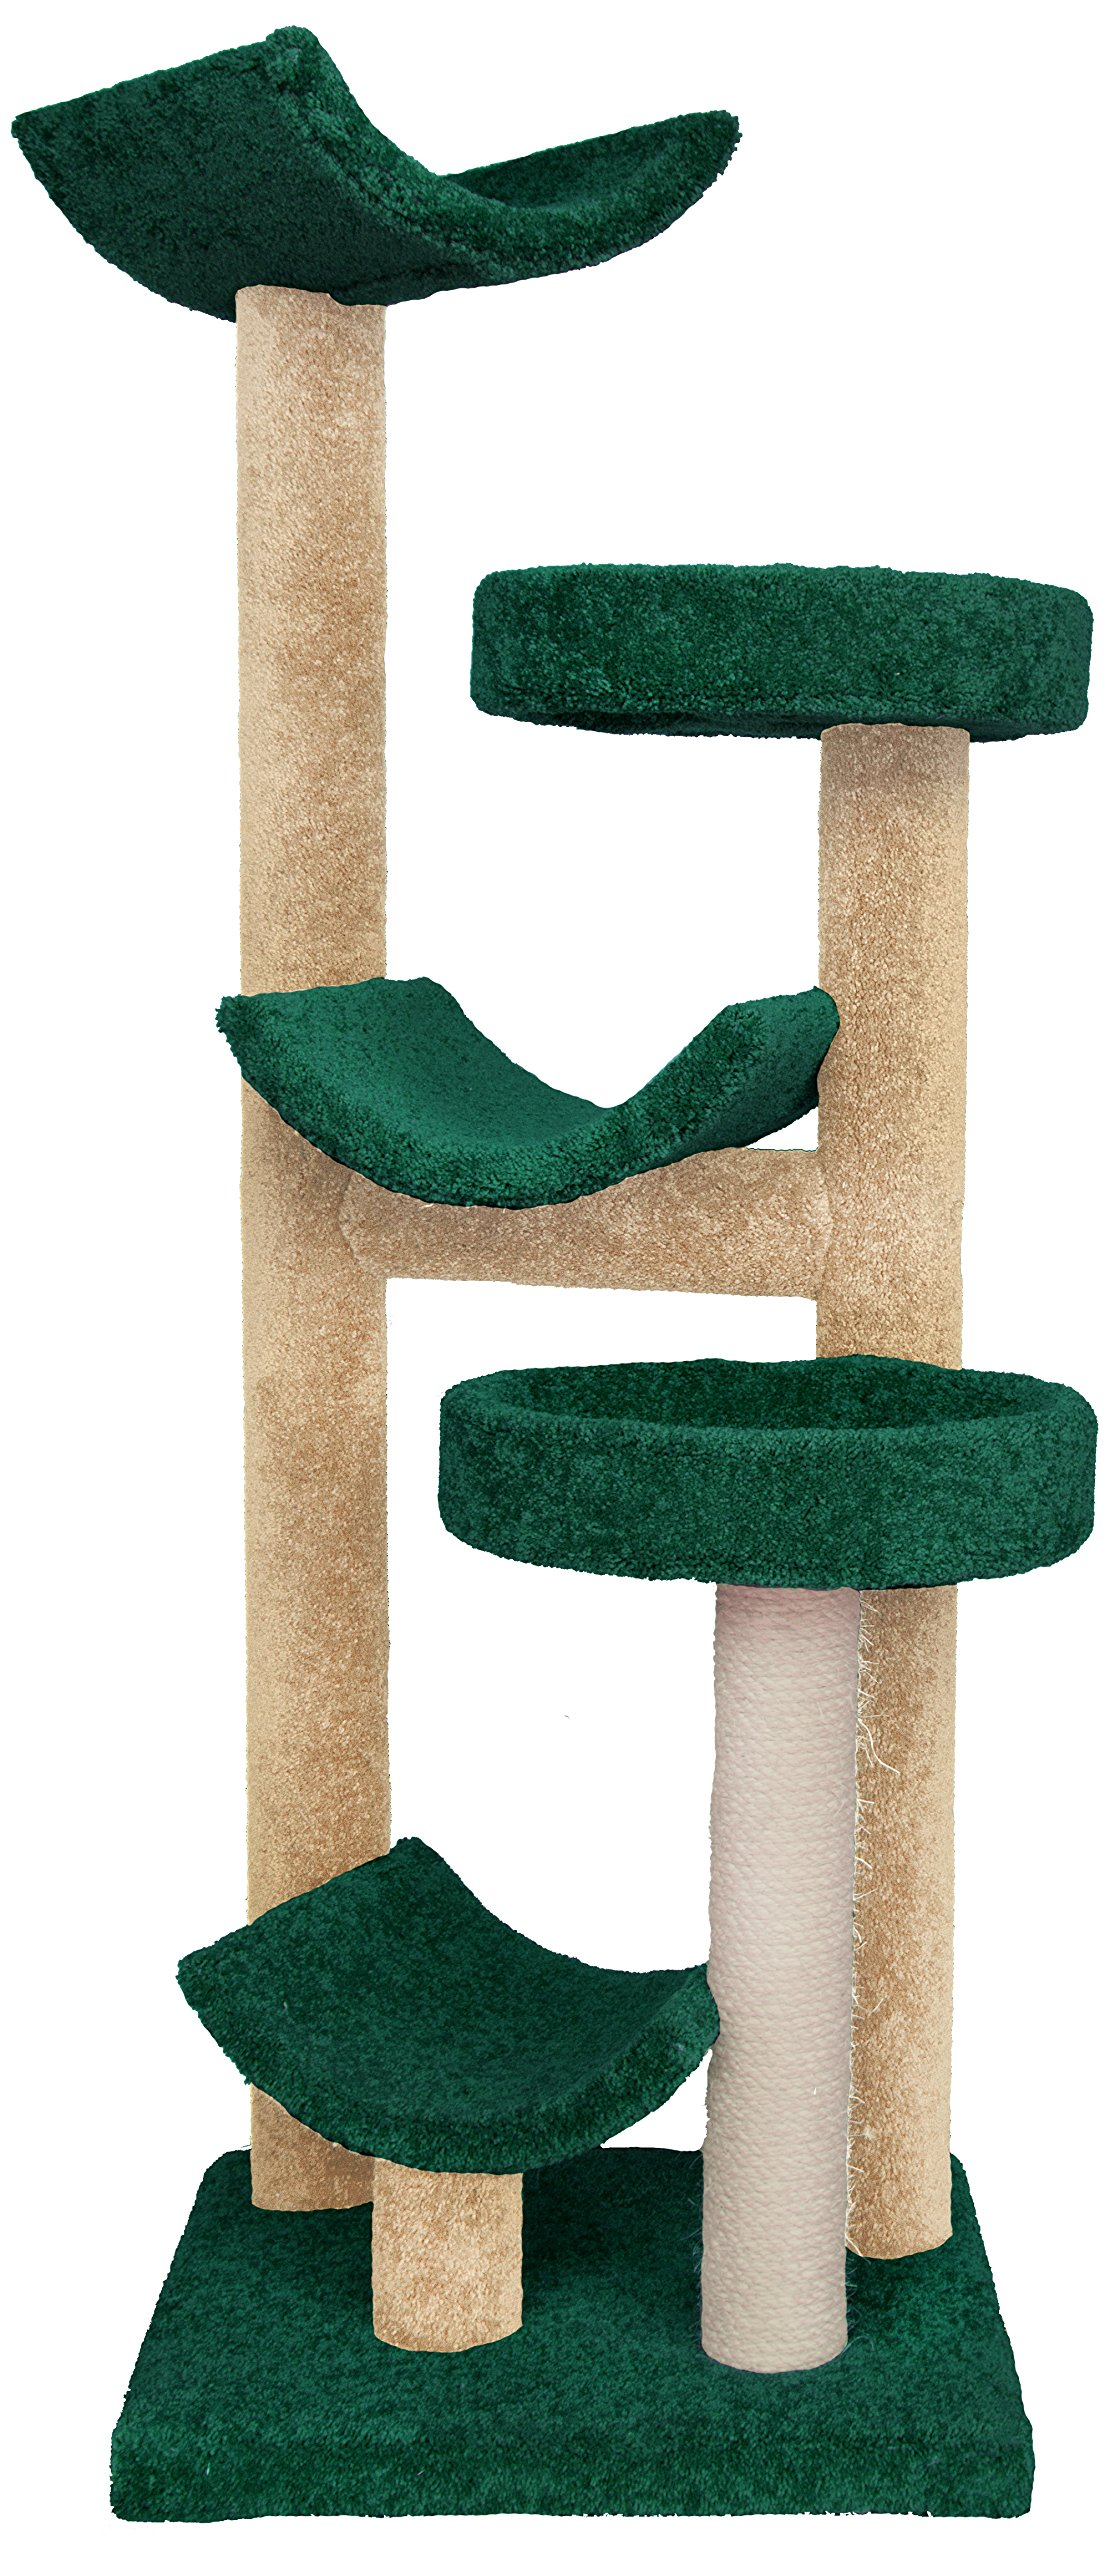 Molly and Friends A Five Tier Scratching Post Funiture,Green/Beige